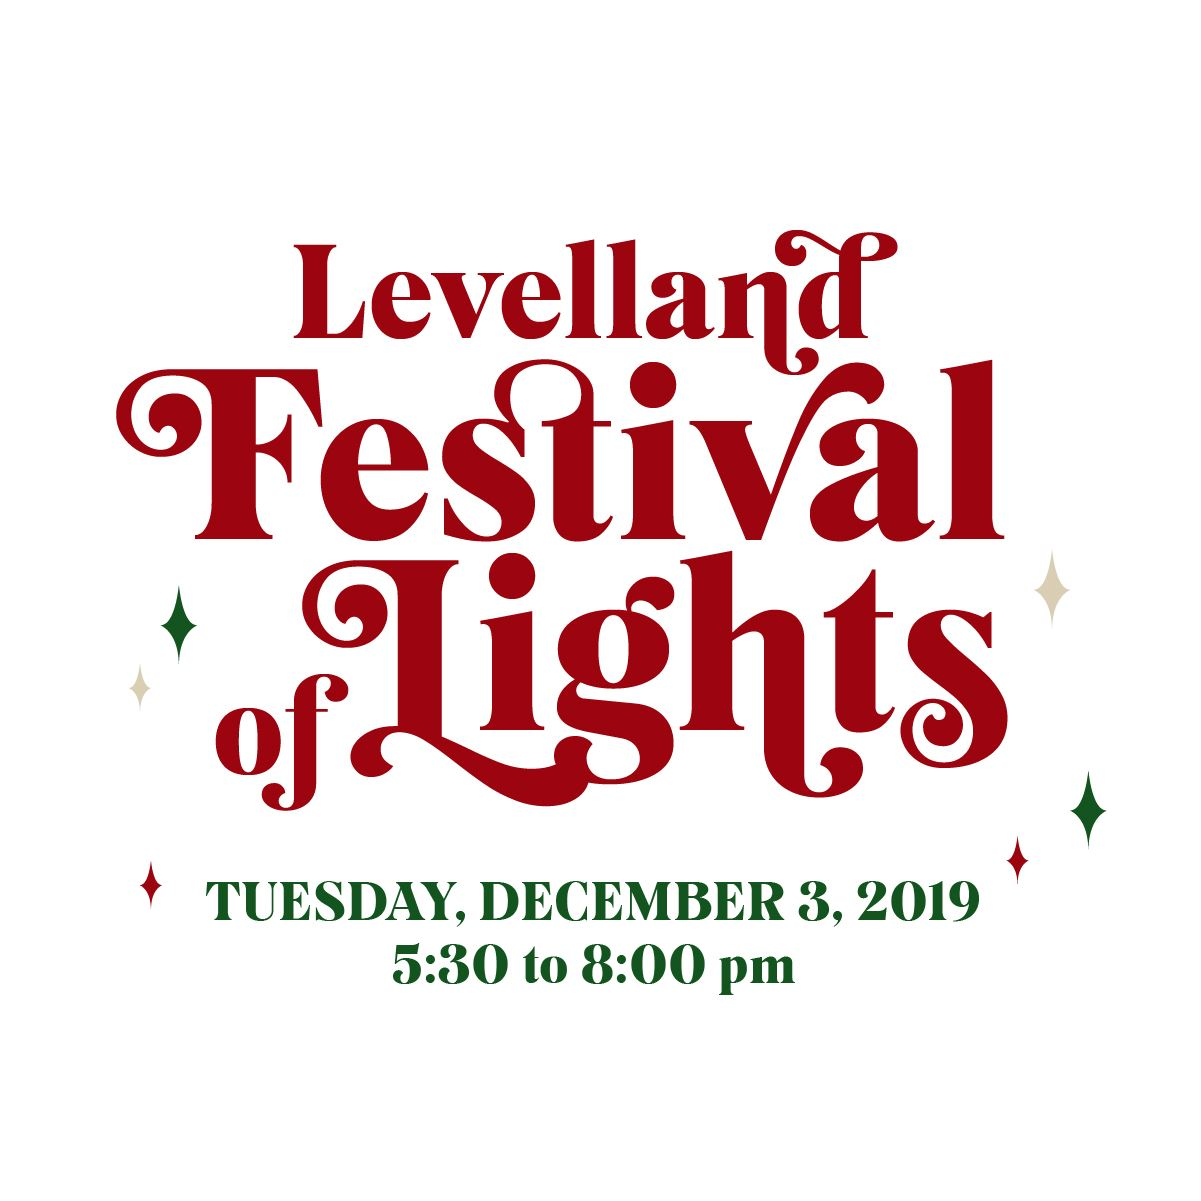 Levelland Festival of Lights logo with red letters and event date and time